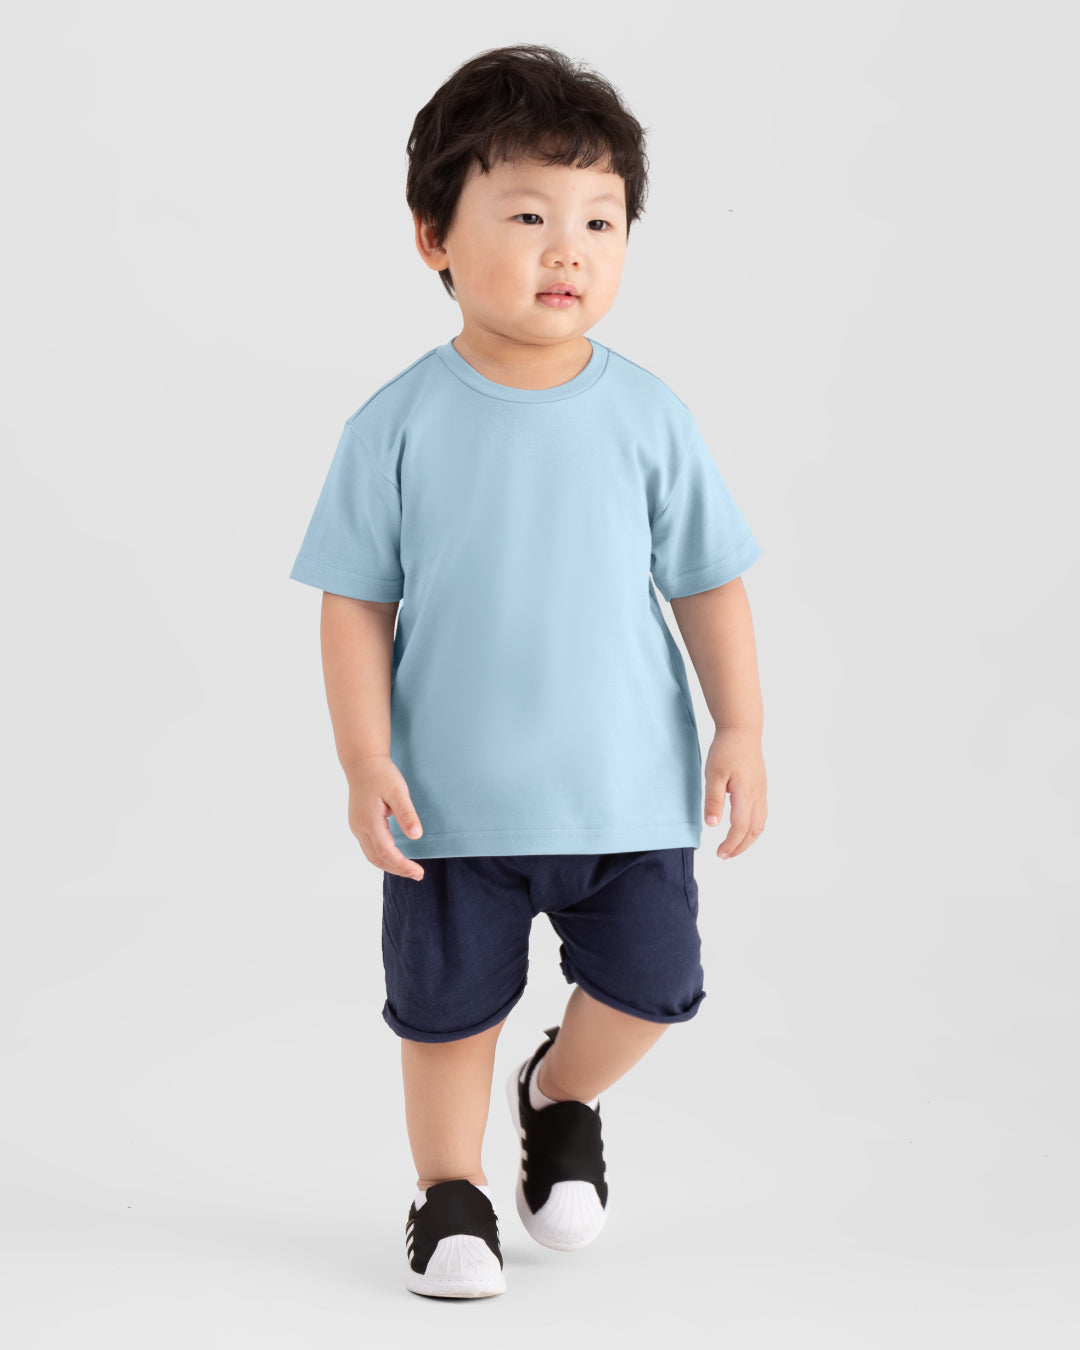 Kids Premium Weight Cotton Crew Neck Tee